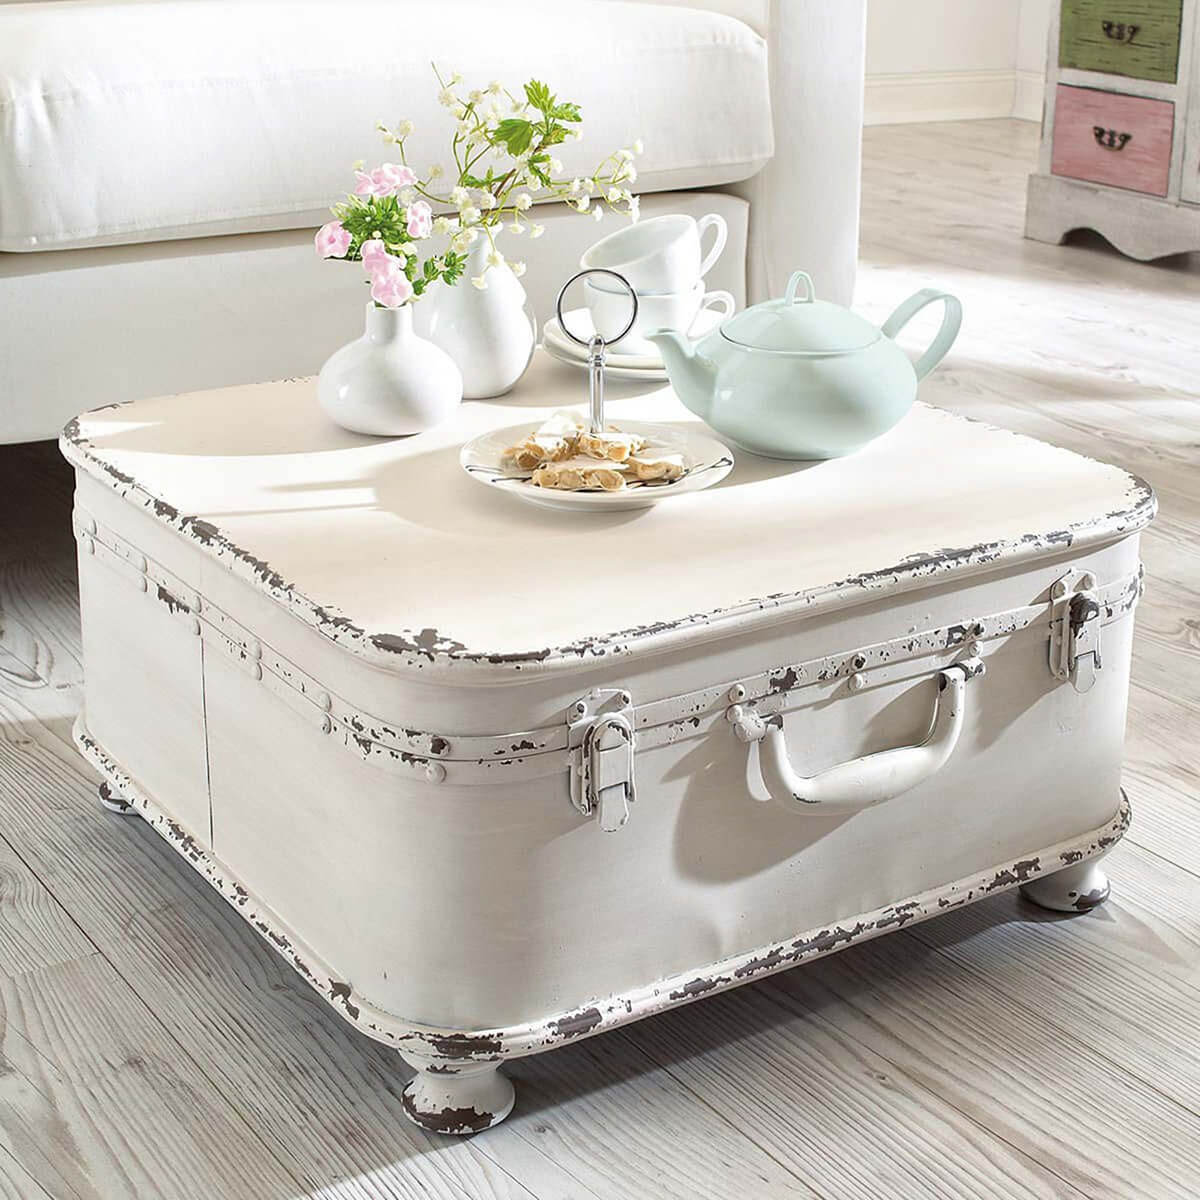 Large White Trunk with Tea Set